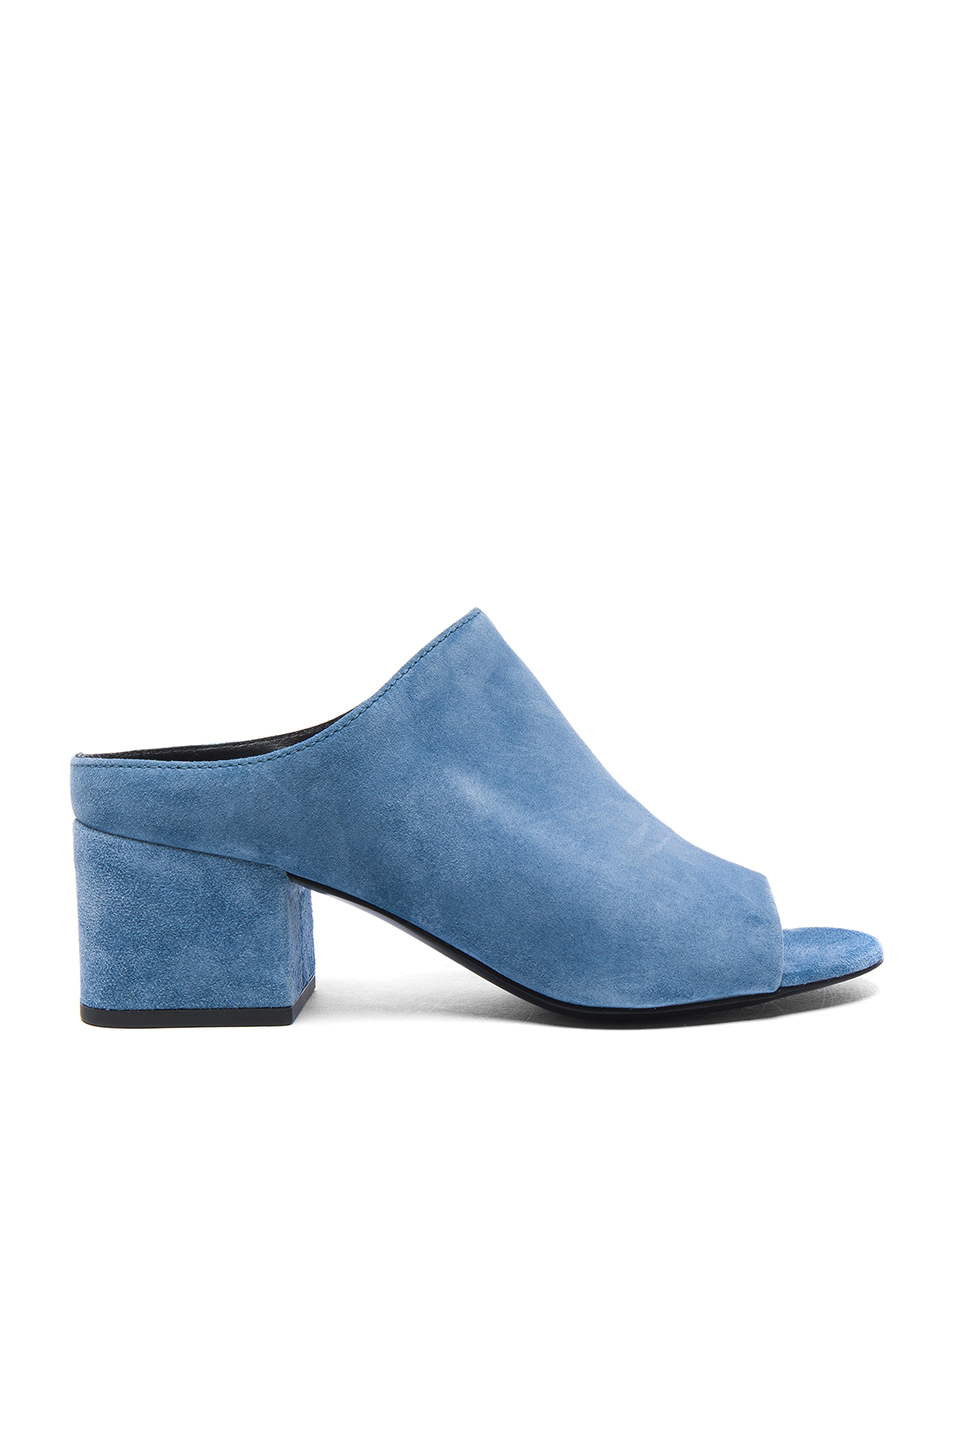 3.1 phillip lim Suede Cube Open Toe Slip Ons in Blue